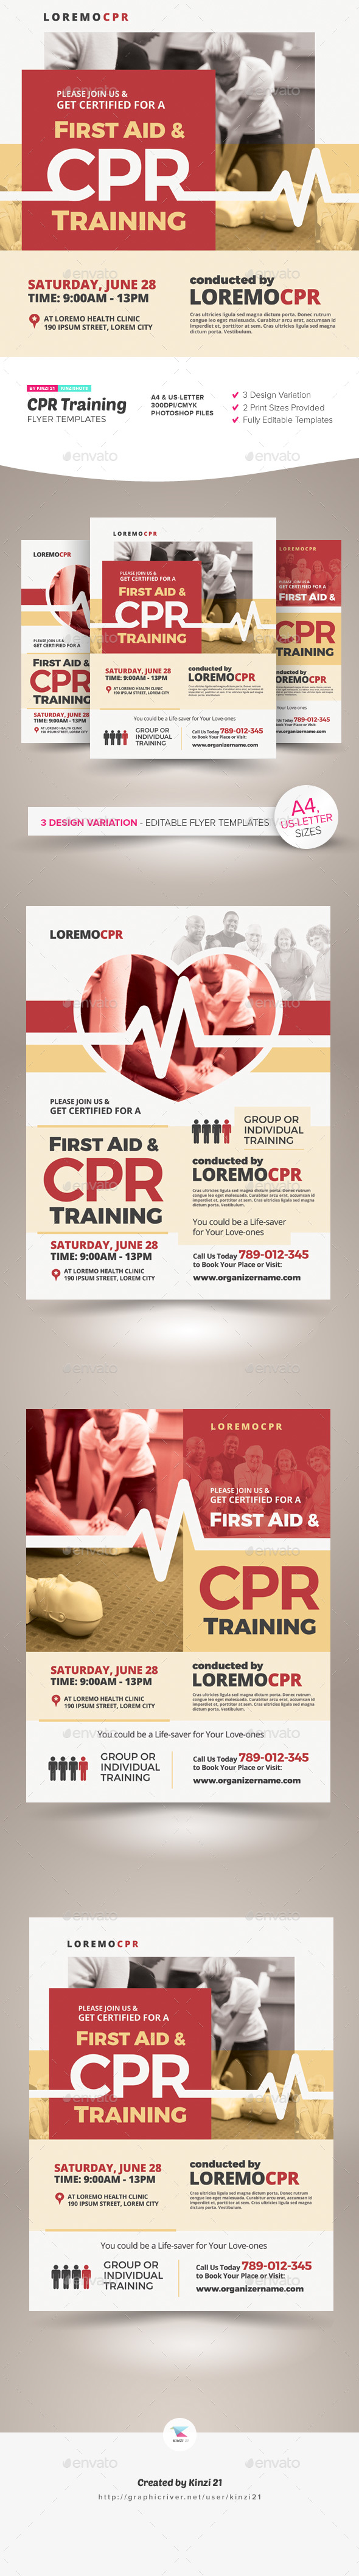 pamphlet graphics designs templates from graphicriver